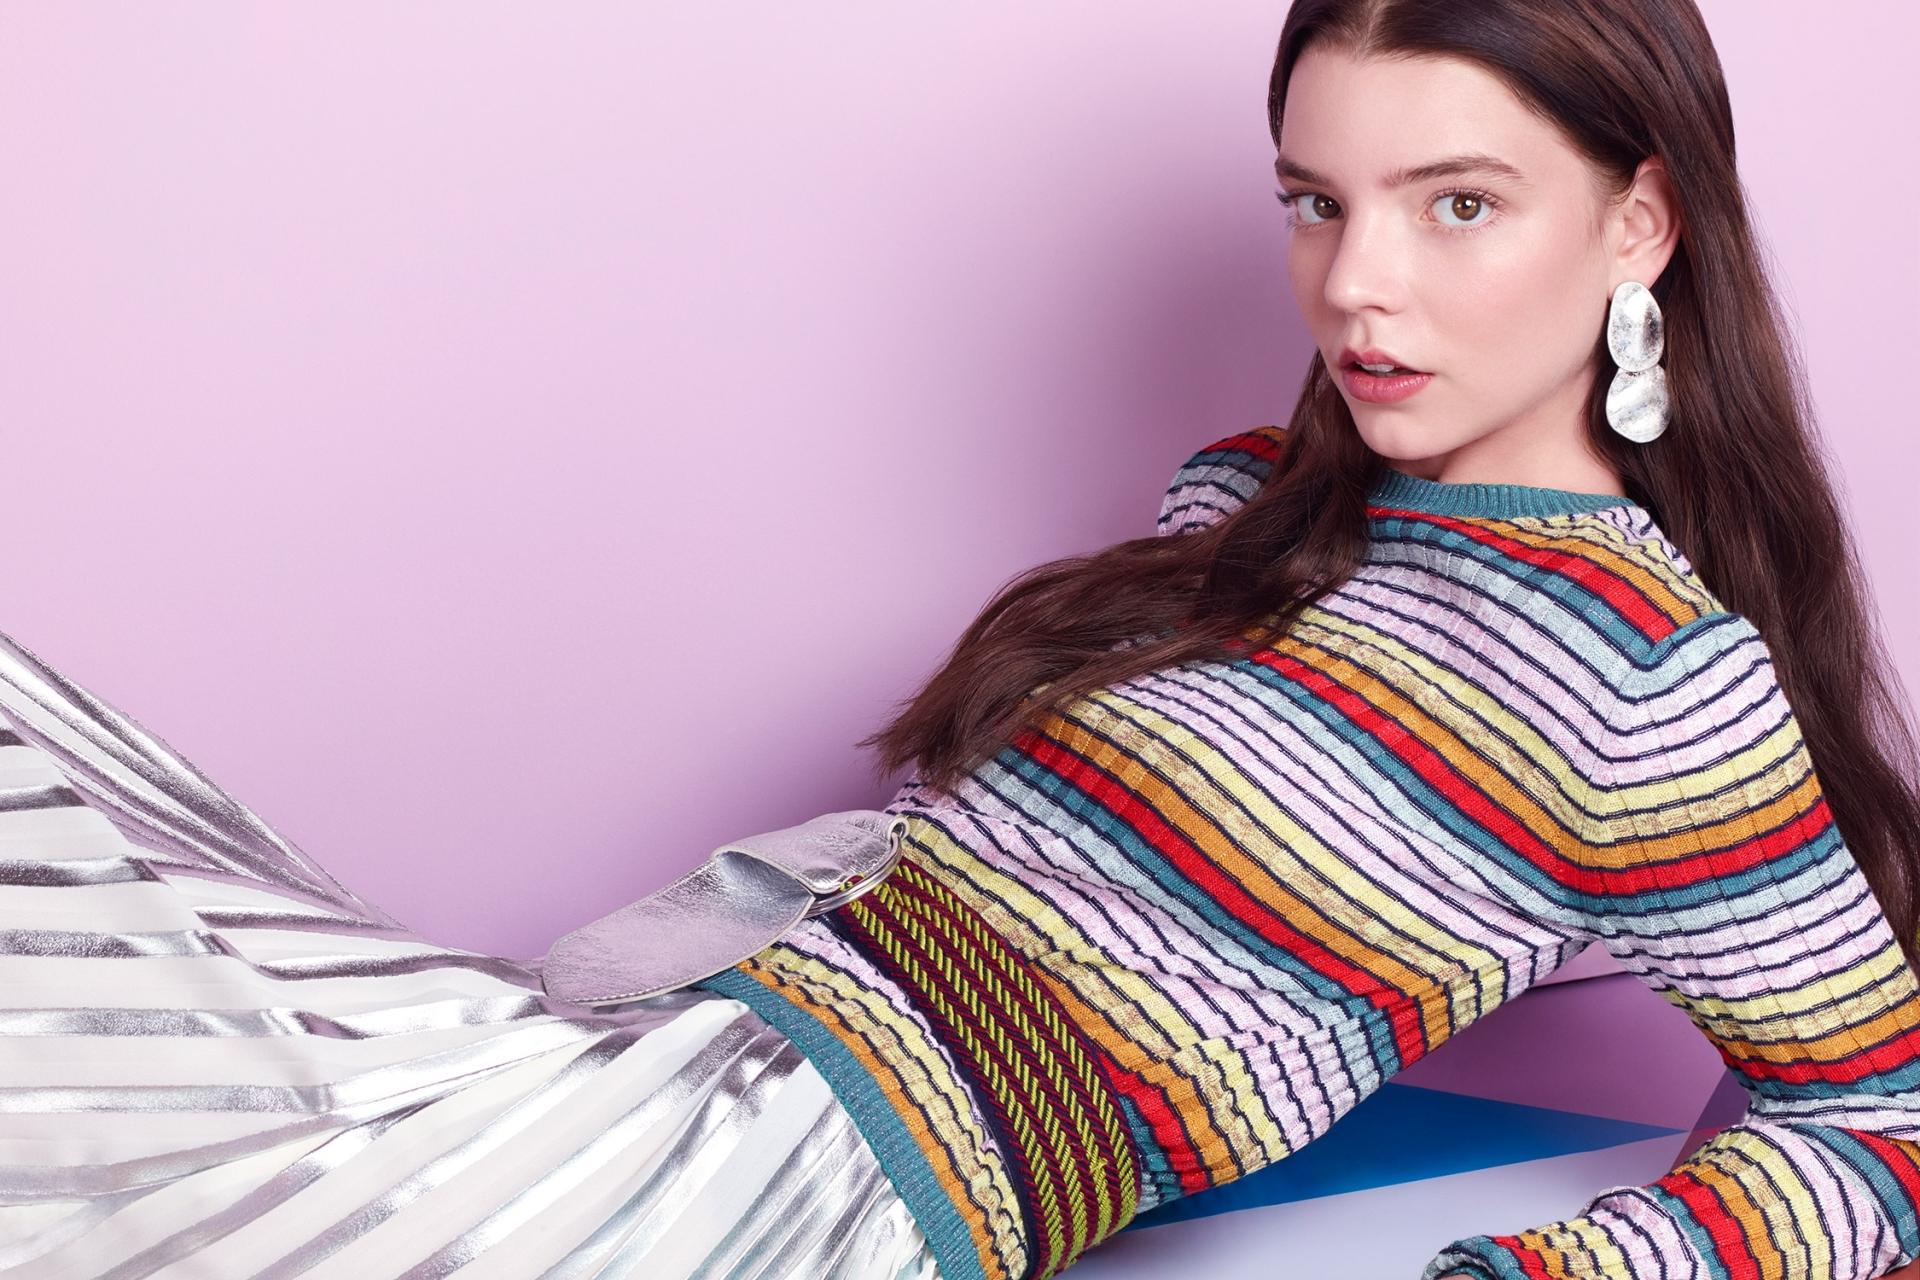 Anya Taylor-Joy at 1280 x 960 size wallpapers HD quality